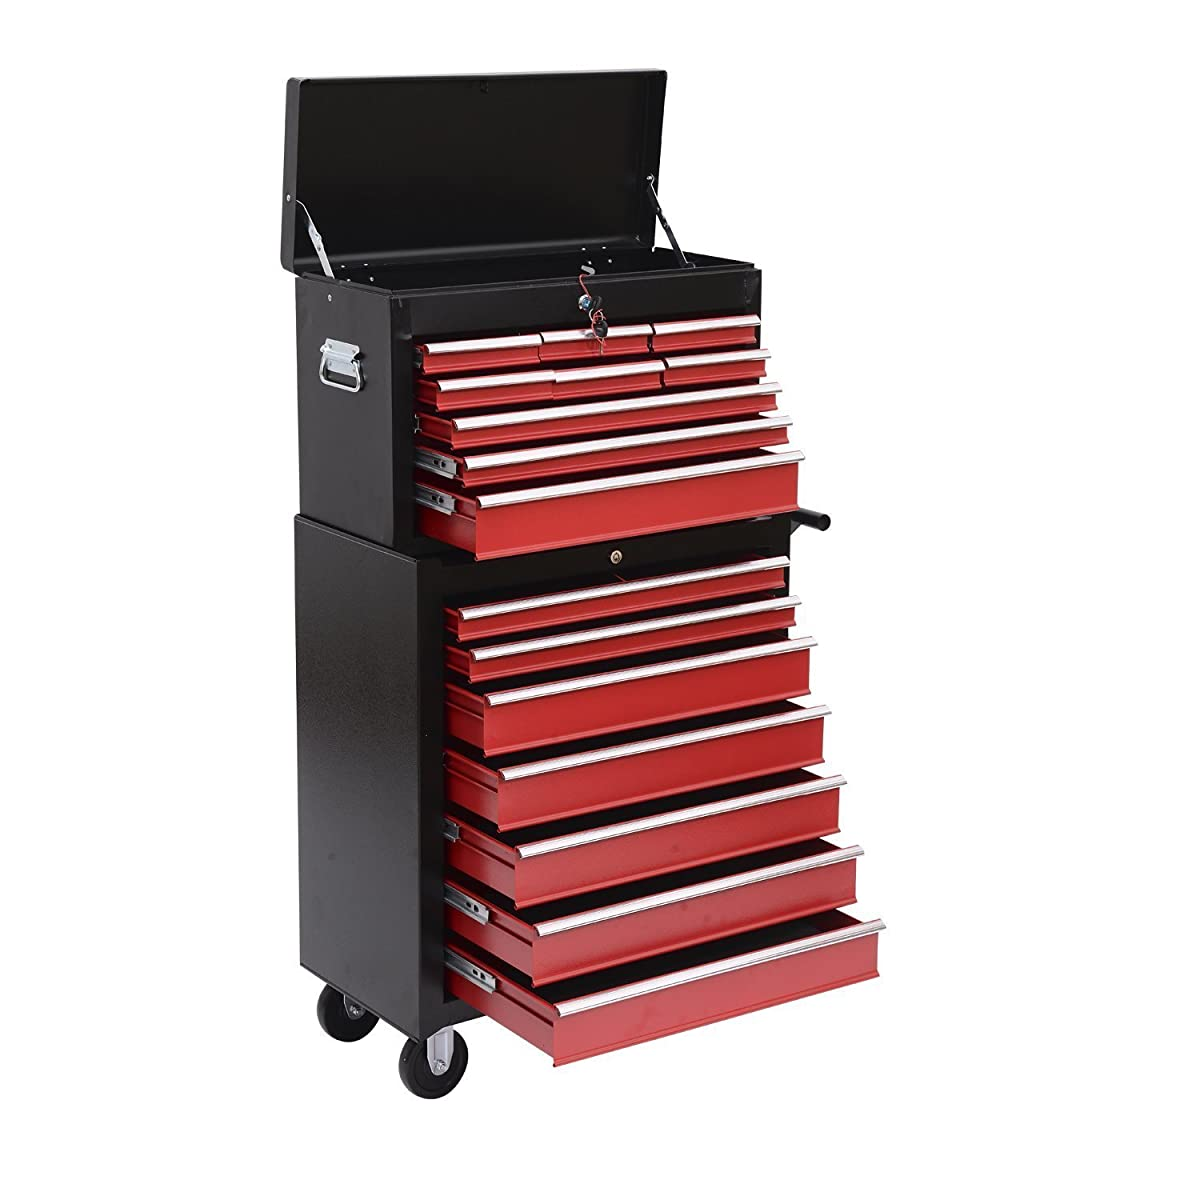 HomCom Rolling Tool Chest Cabinet with 16 Drawers, Black and Red